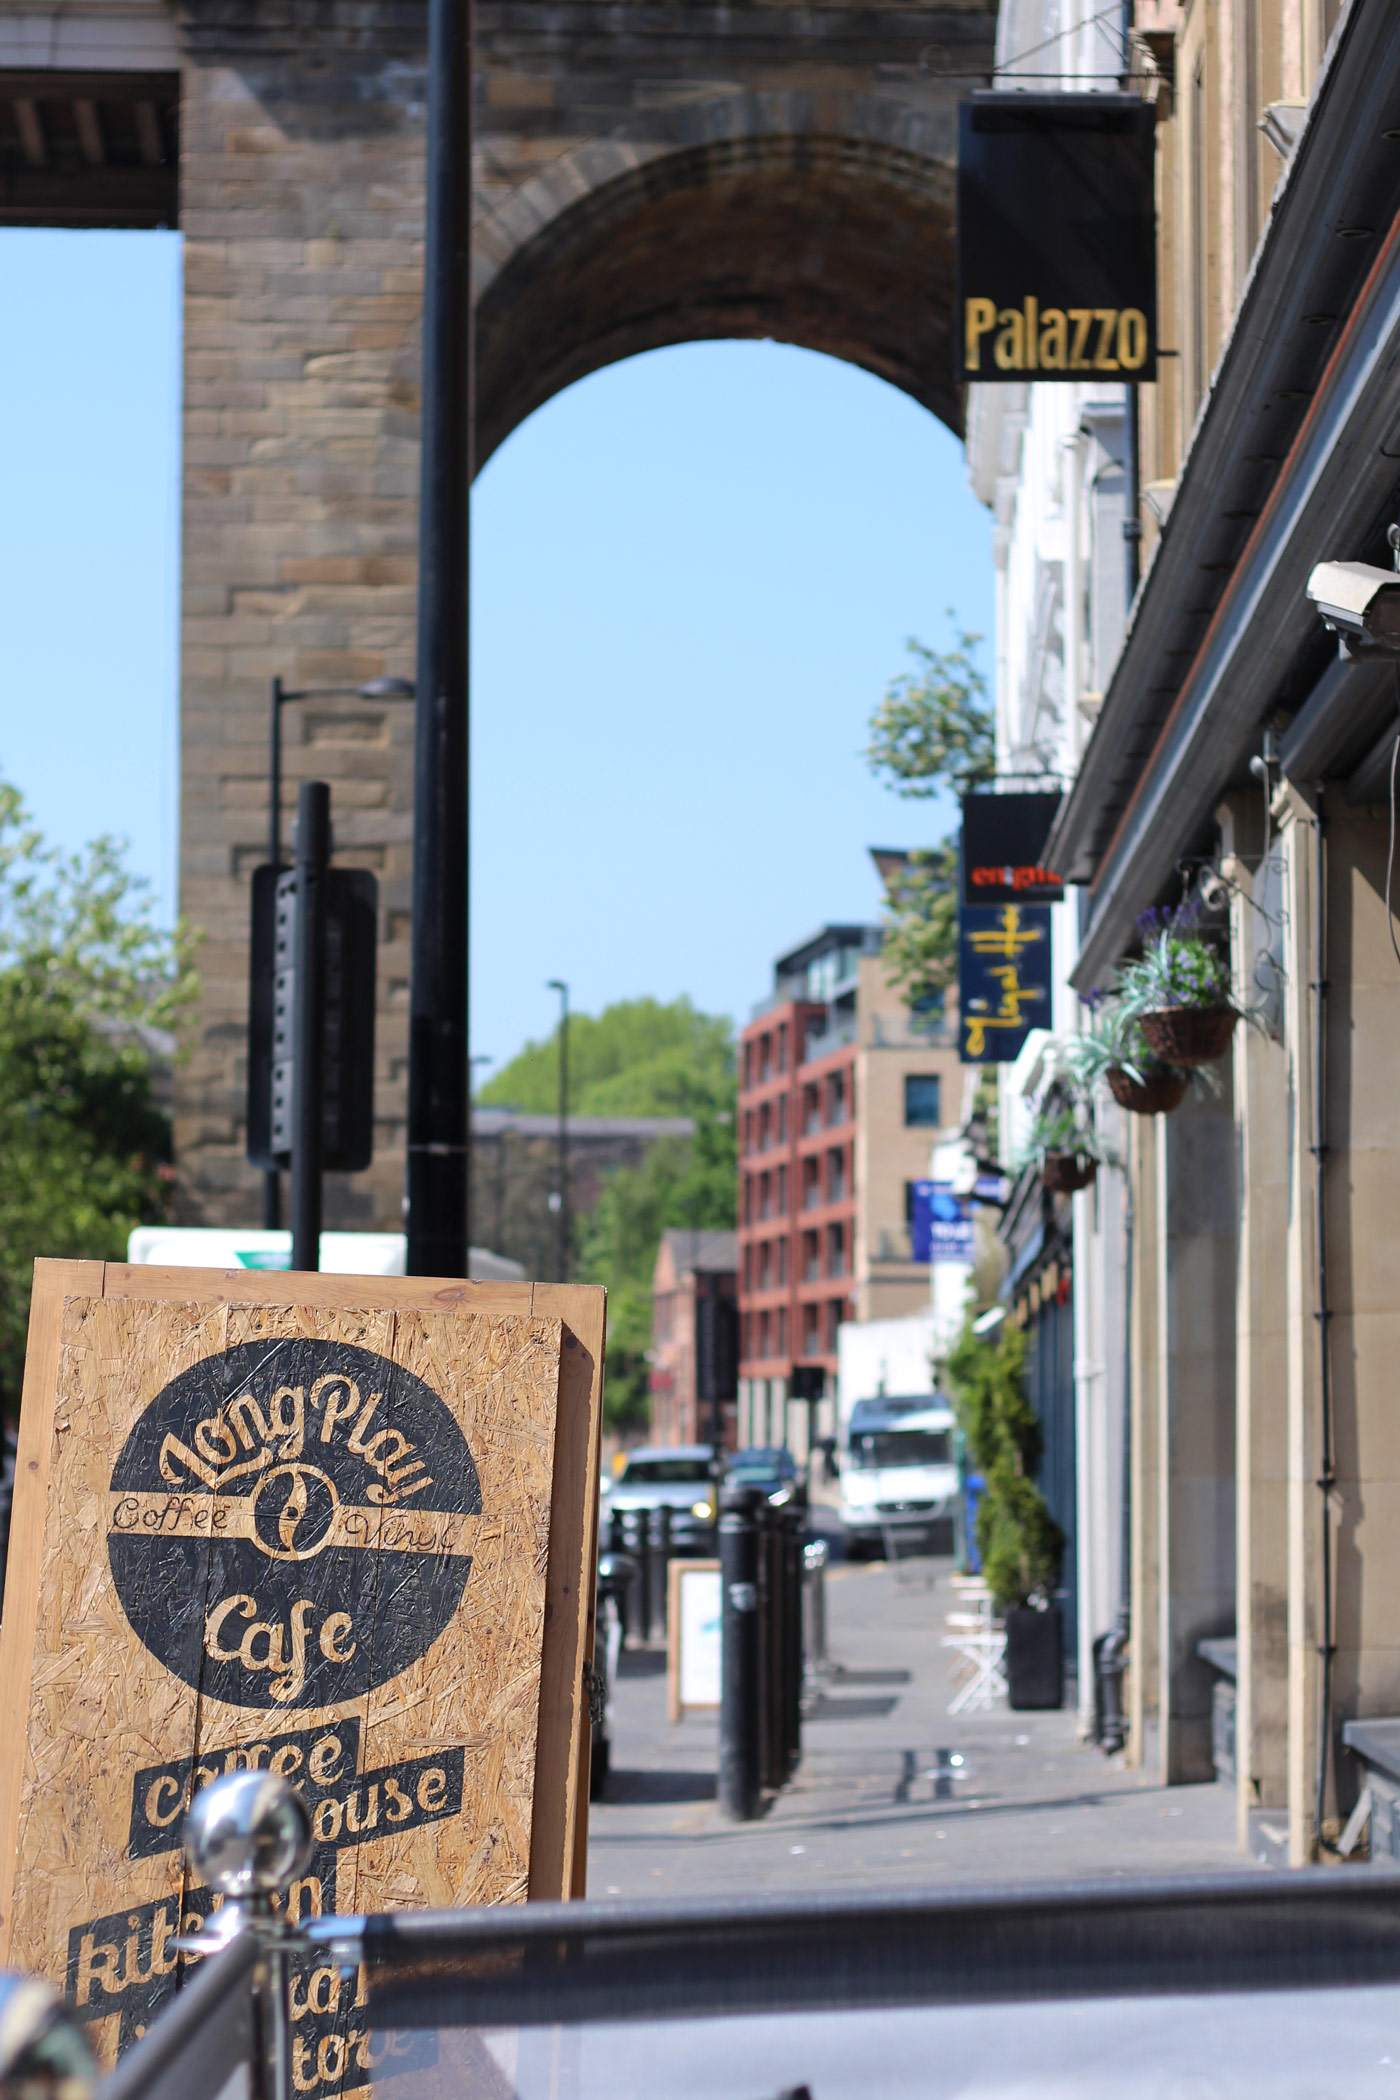 long-play-cafe-newcastle-NE1-newcastle-quayside-review-brunch-breakfast-where-to-eat-1